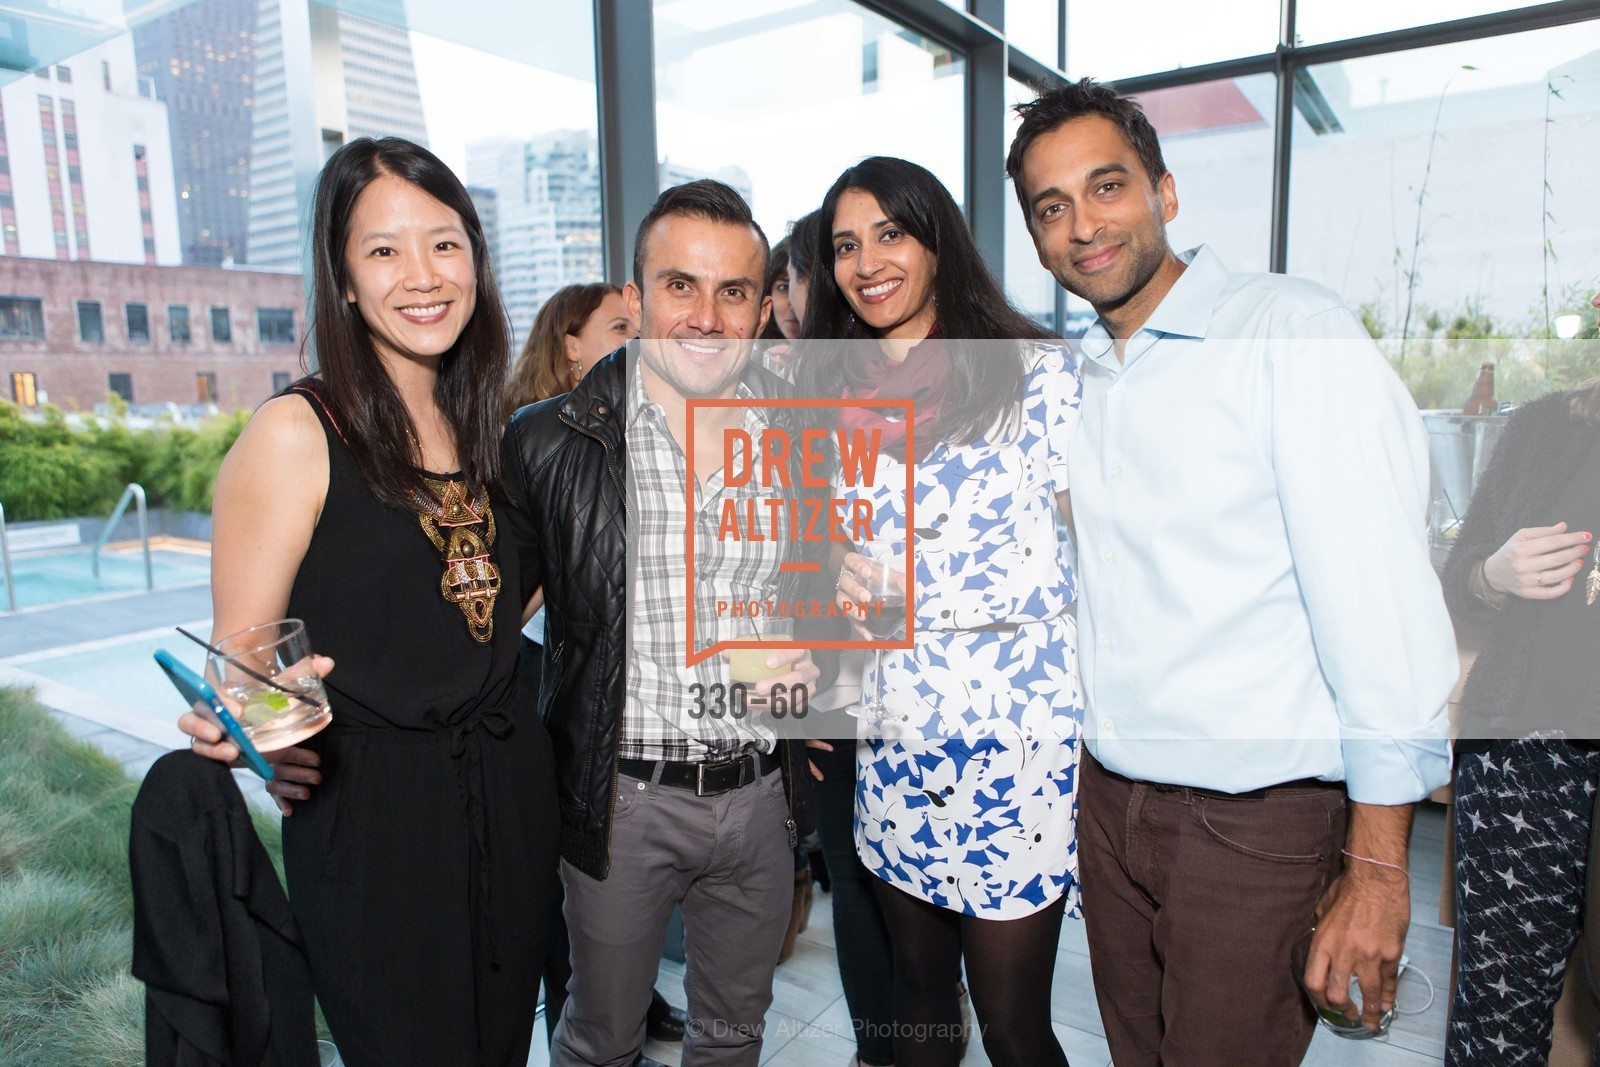 MingMing Kwan, Carlos Bermudez, Sapna Meister, Huns Mith, MR PORTER Celebrate The San Francisco Issue of The Journal, The Battery Rooftop - The Battery SF, April 23rd, 2015,Drew Altizer, Drew Altizer Photography, full-service agency, private events, San Francisco photographer, photographer california